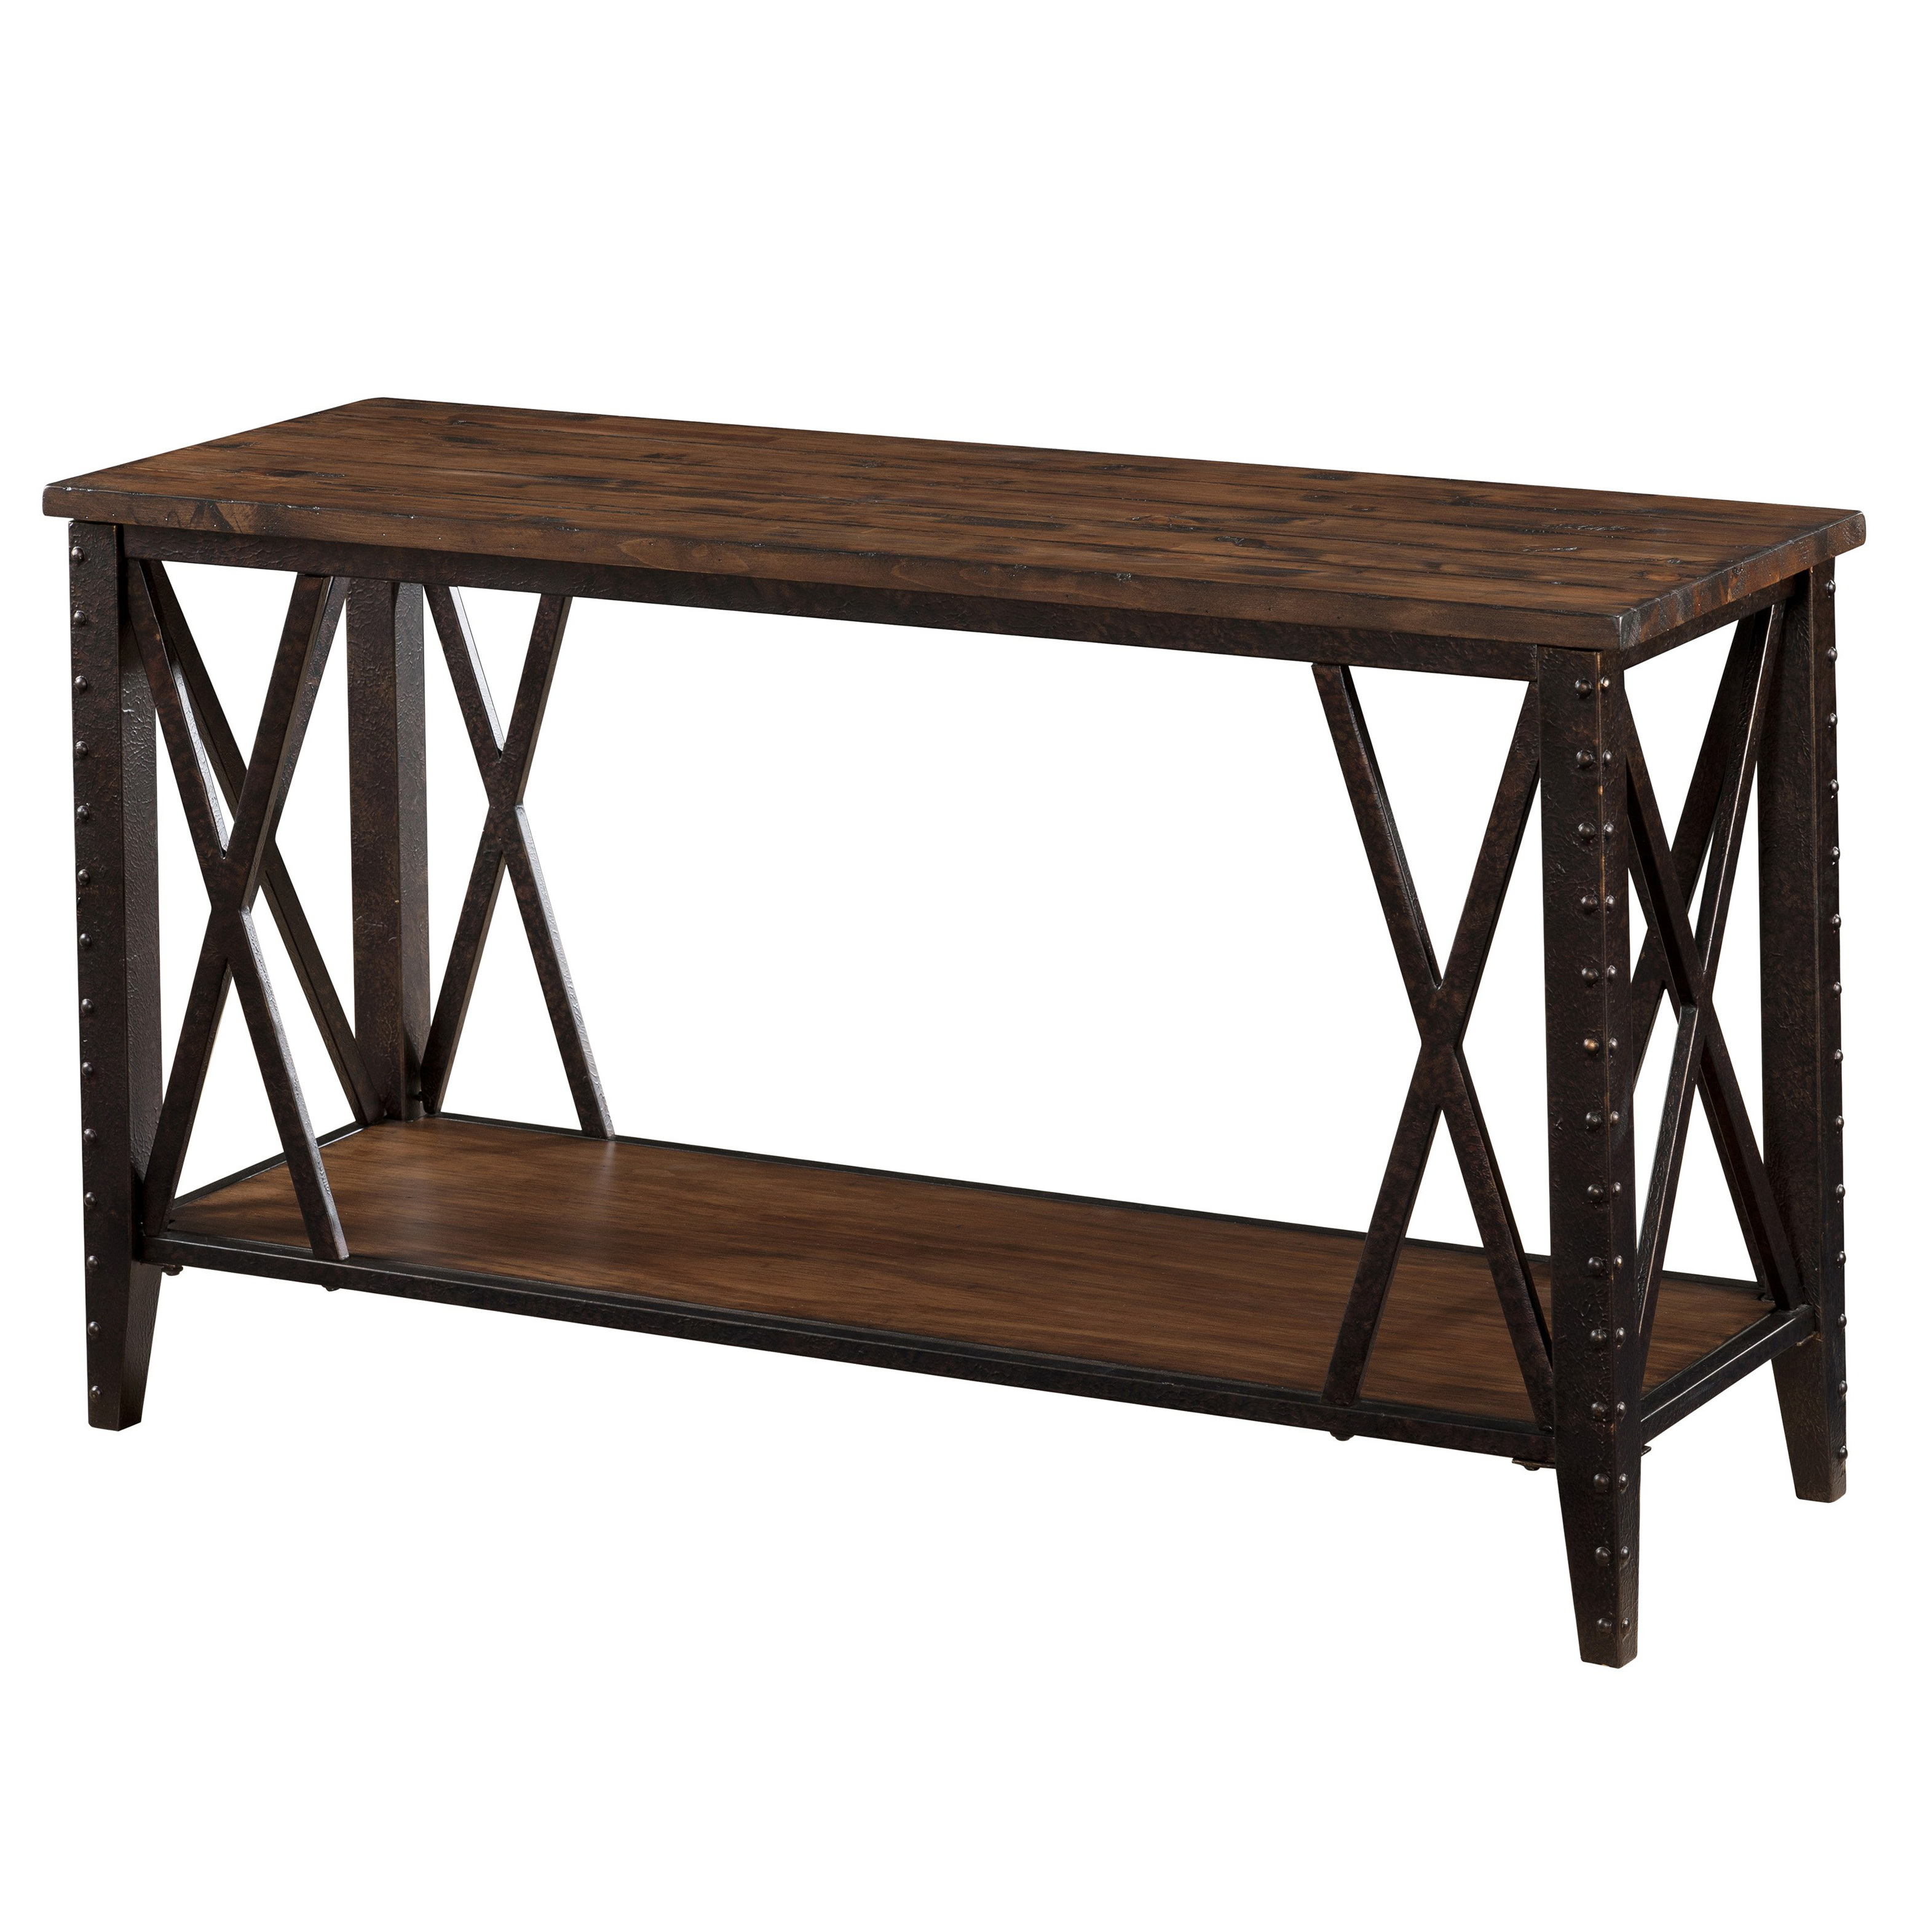 Wood console table with metal legs home design ideas for Wood and metal console table